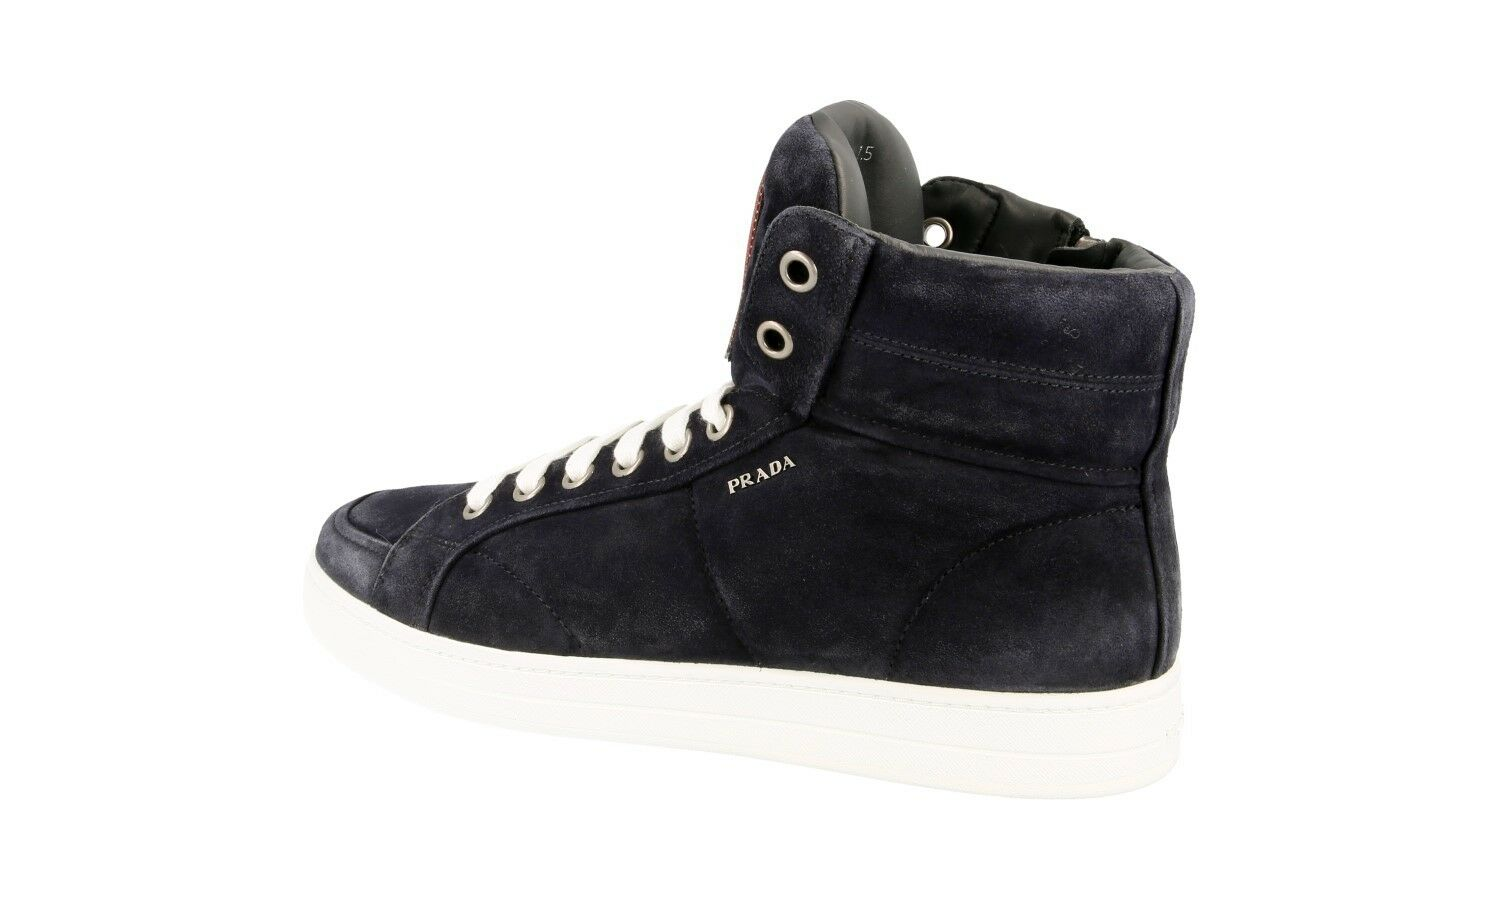 LUXUS PRADA HIGH TOP SNEAKER SCHUHE 4T2596 BLAU 42 NEU NEW 7,5 41,5 42 BLAU f52865